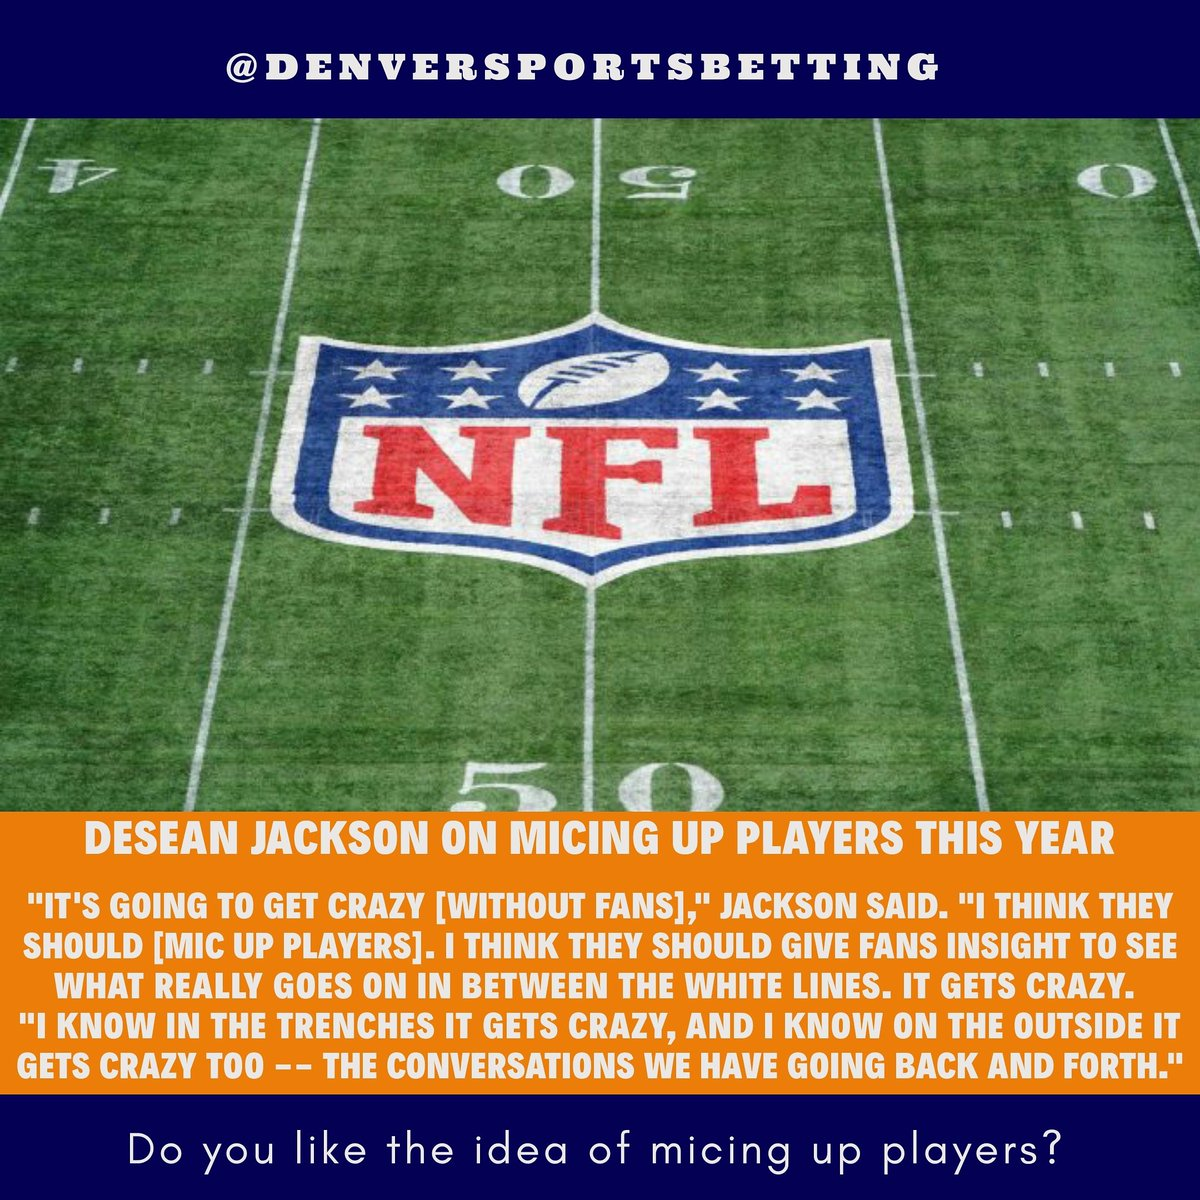 Would you want players micd up if there's no fans in the stands?   #broncos #denverbroncos #broncoscountry #nfl #denver #colorado #espn https://t.co/lmd7BG9Z3q